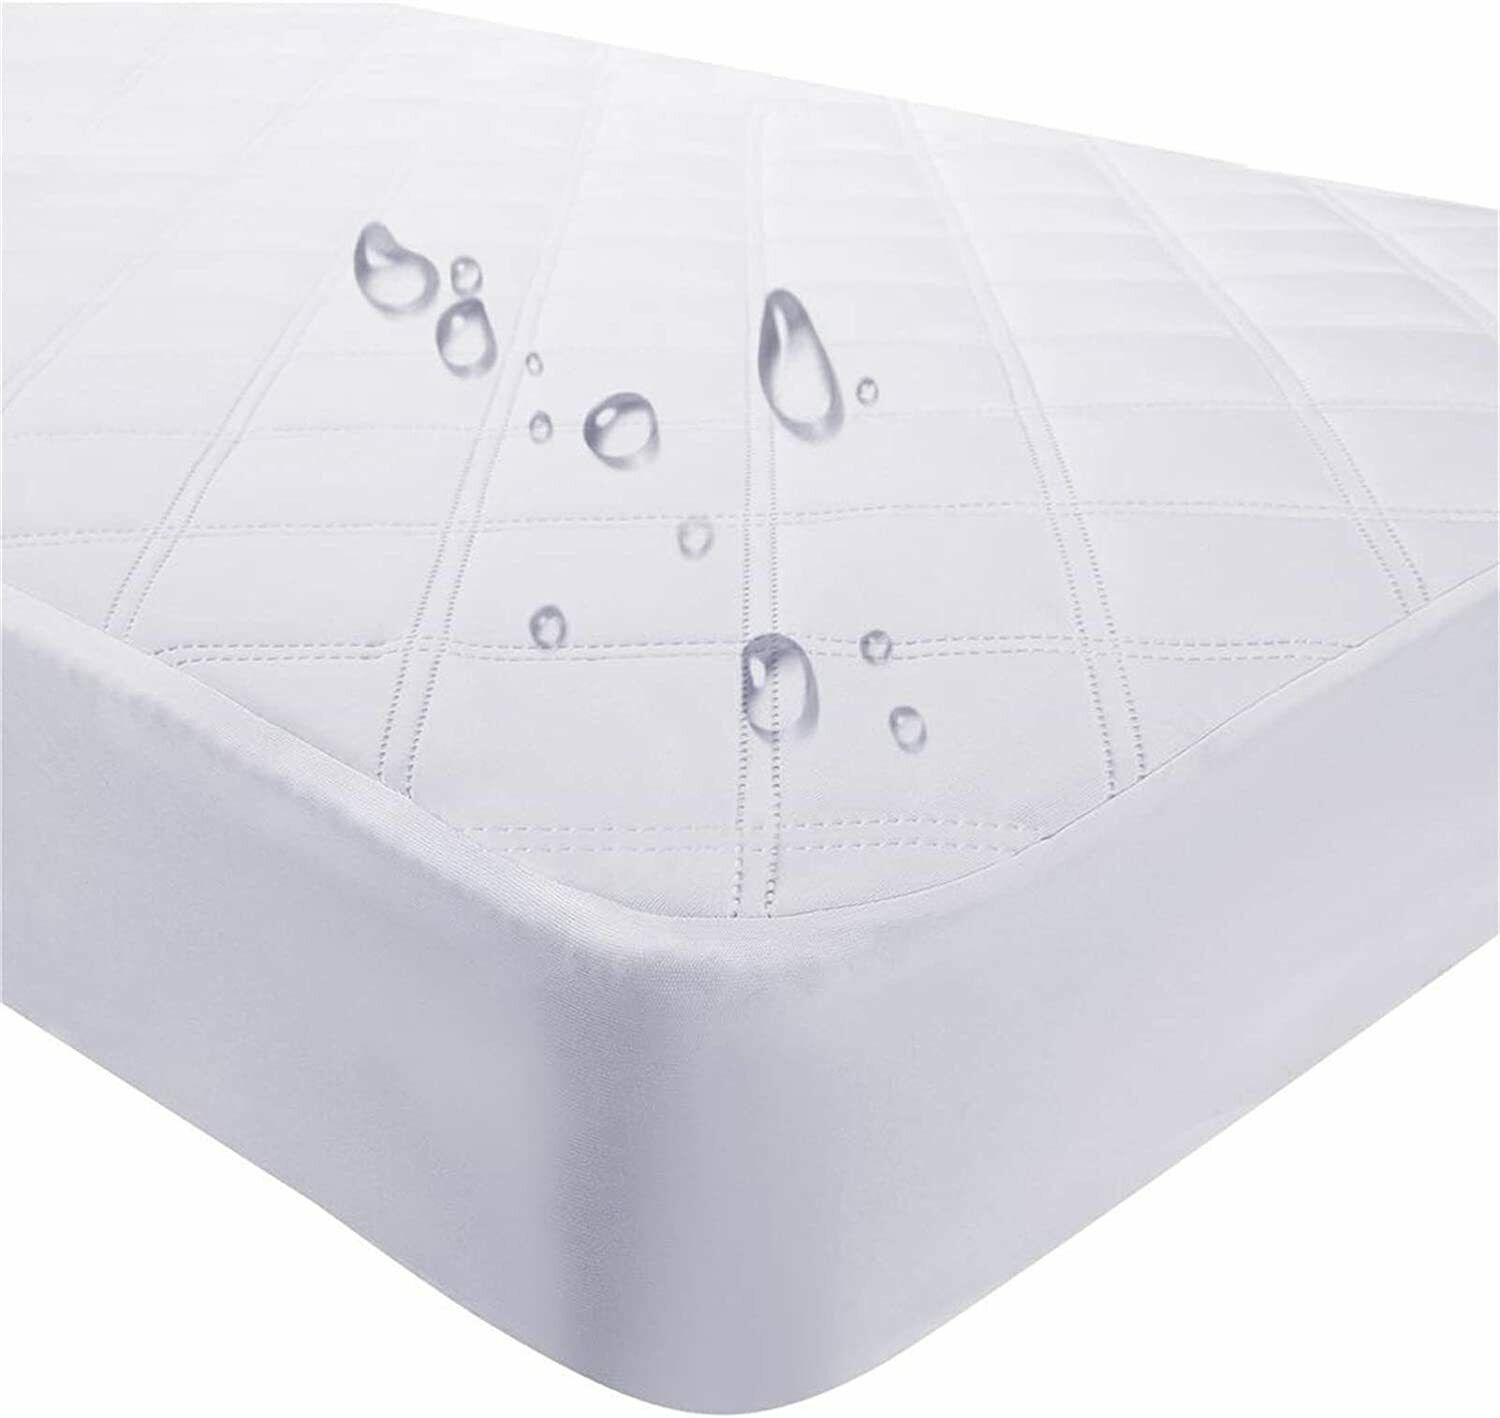 Waterproof Fitted Crib Mattress Pad and Toddler 28''x52'', W